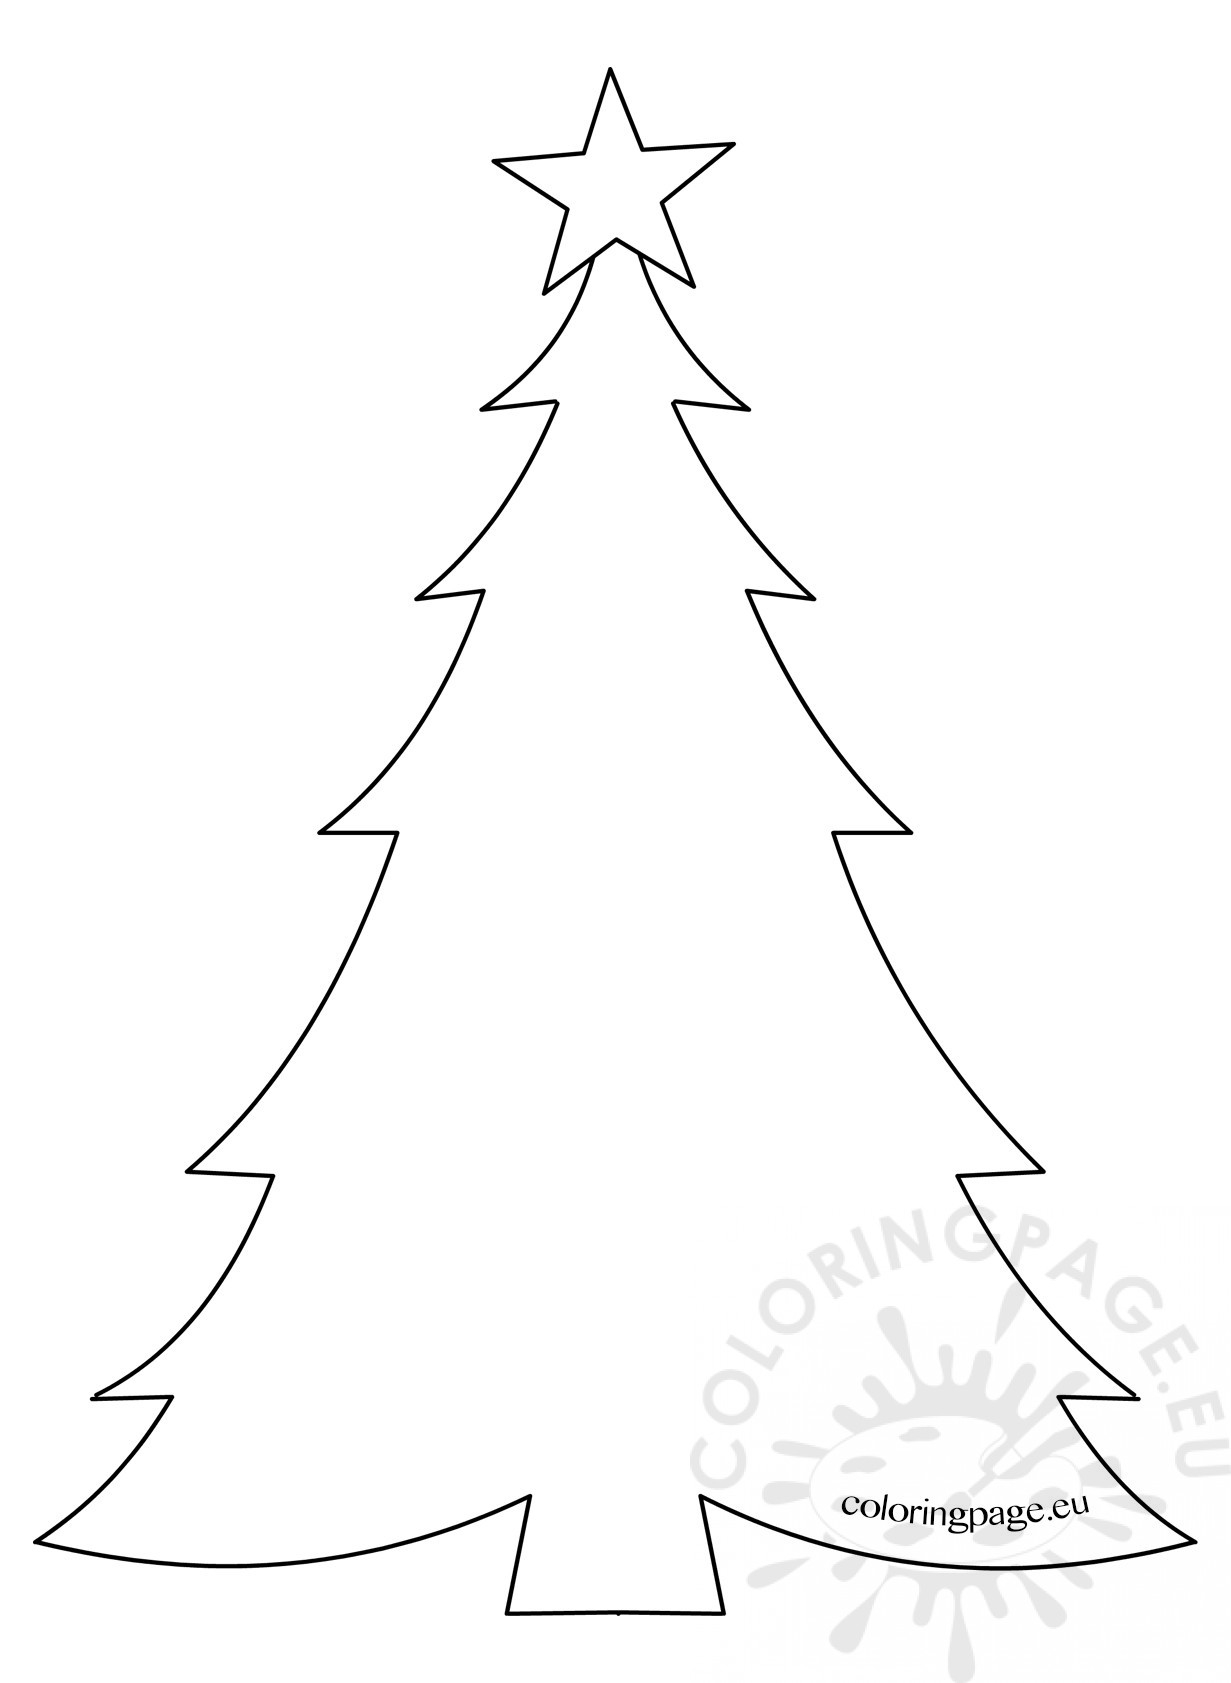 50 Christmas Tree Printable Templates